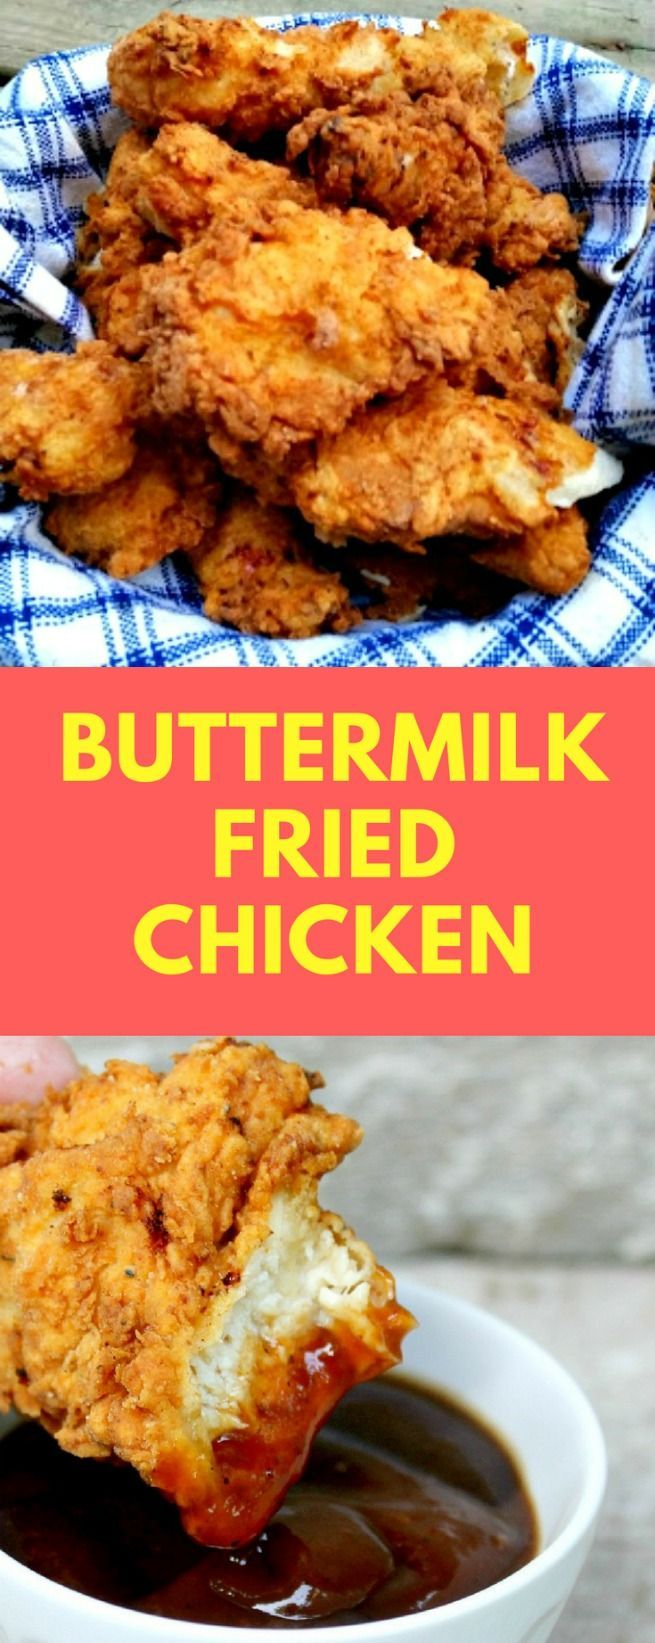 Best 25+ Fried chicken ideas on Pinterest | Crispy fried ...